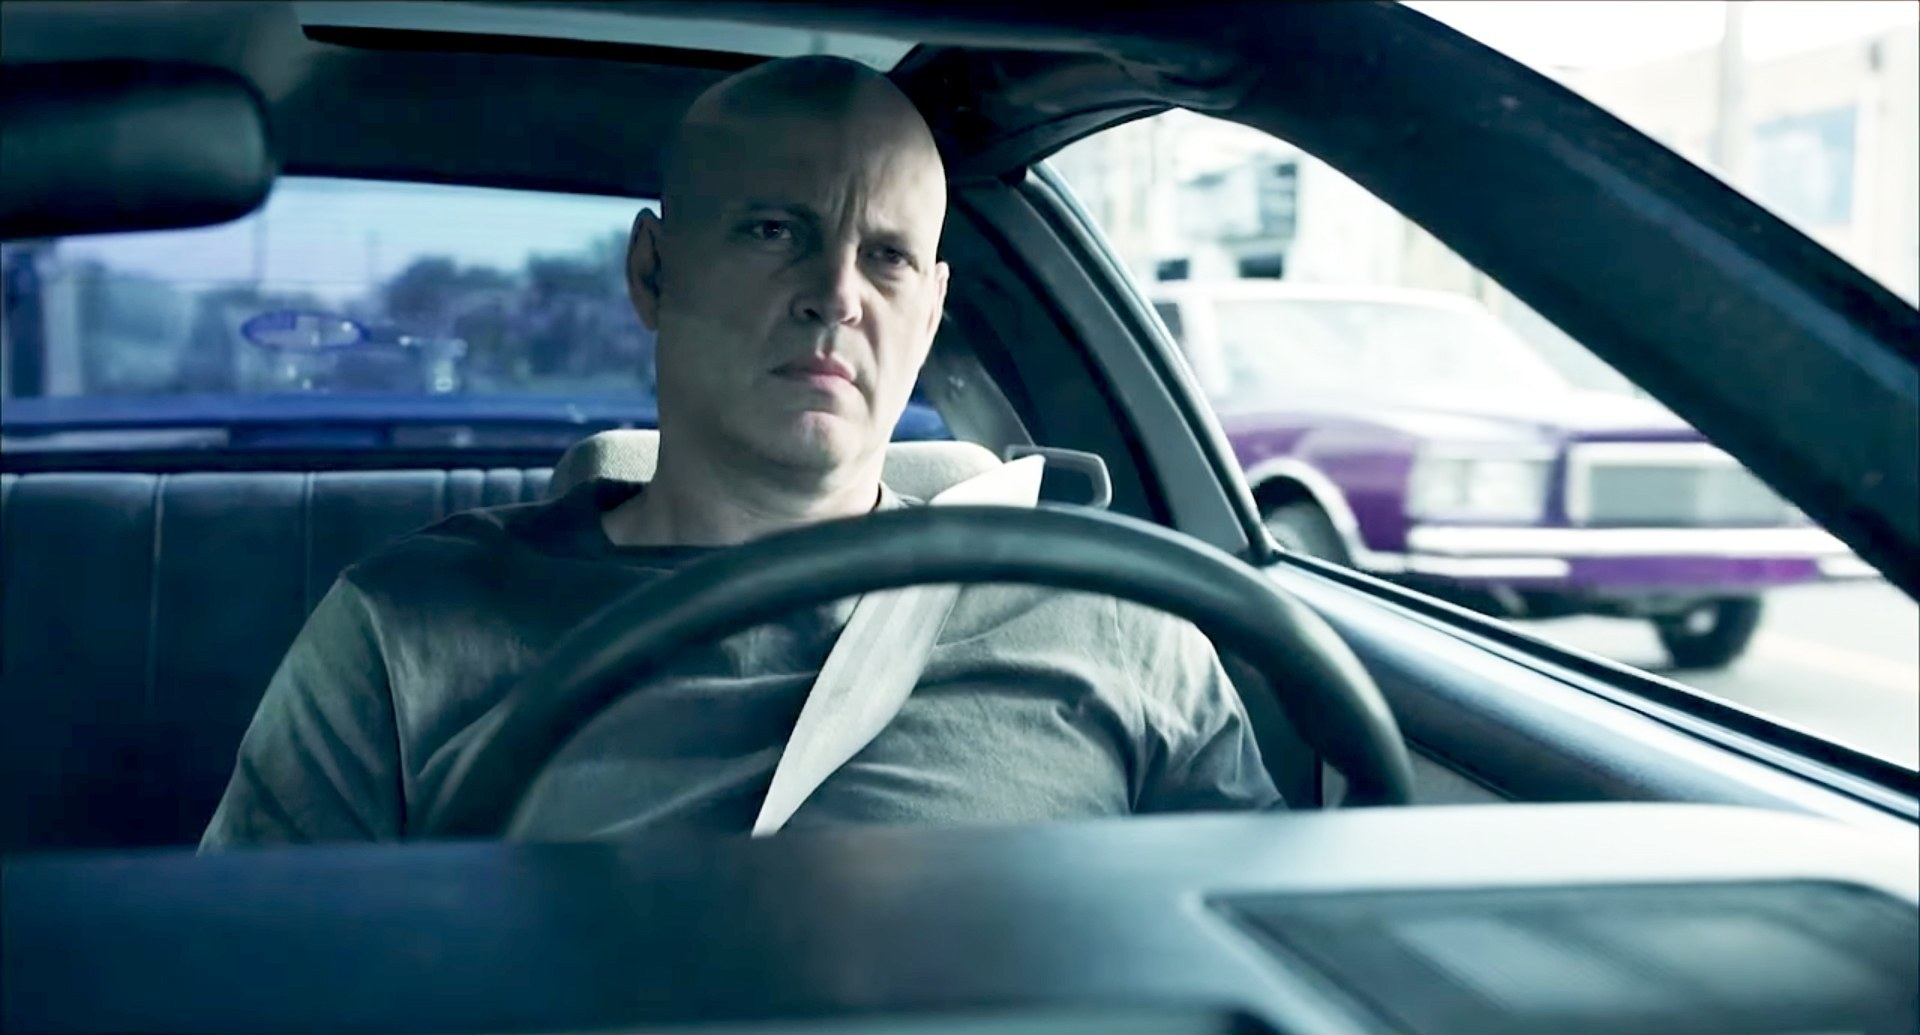 Brawl In Cell Block 99 review: Vince Vaughn is a revelation in this grim prison drama